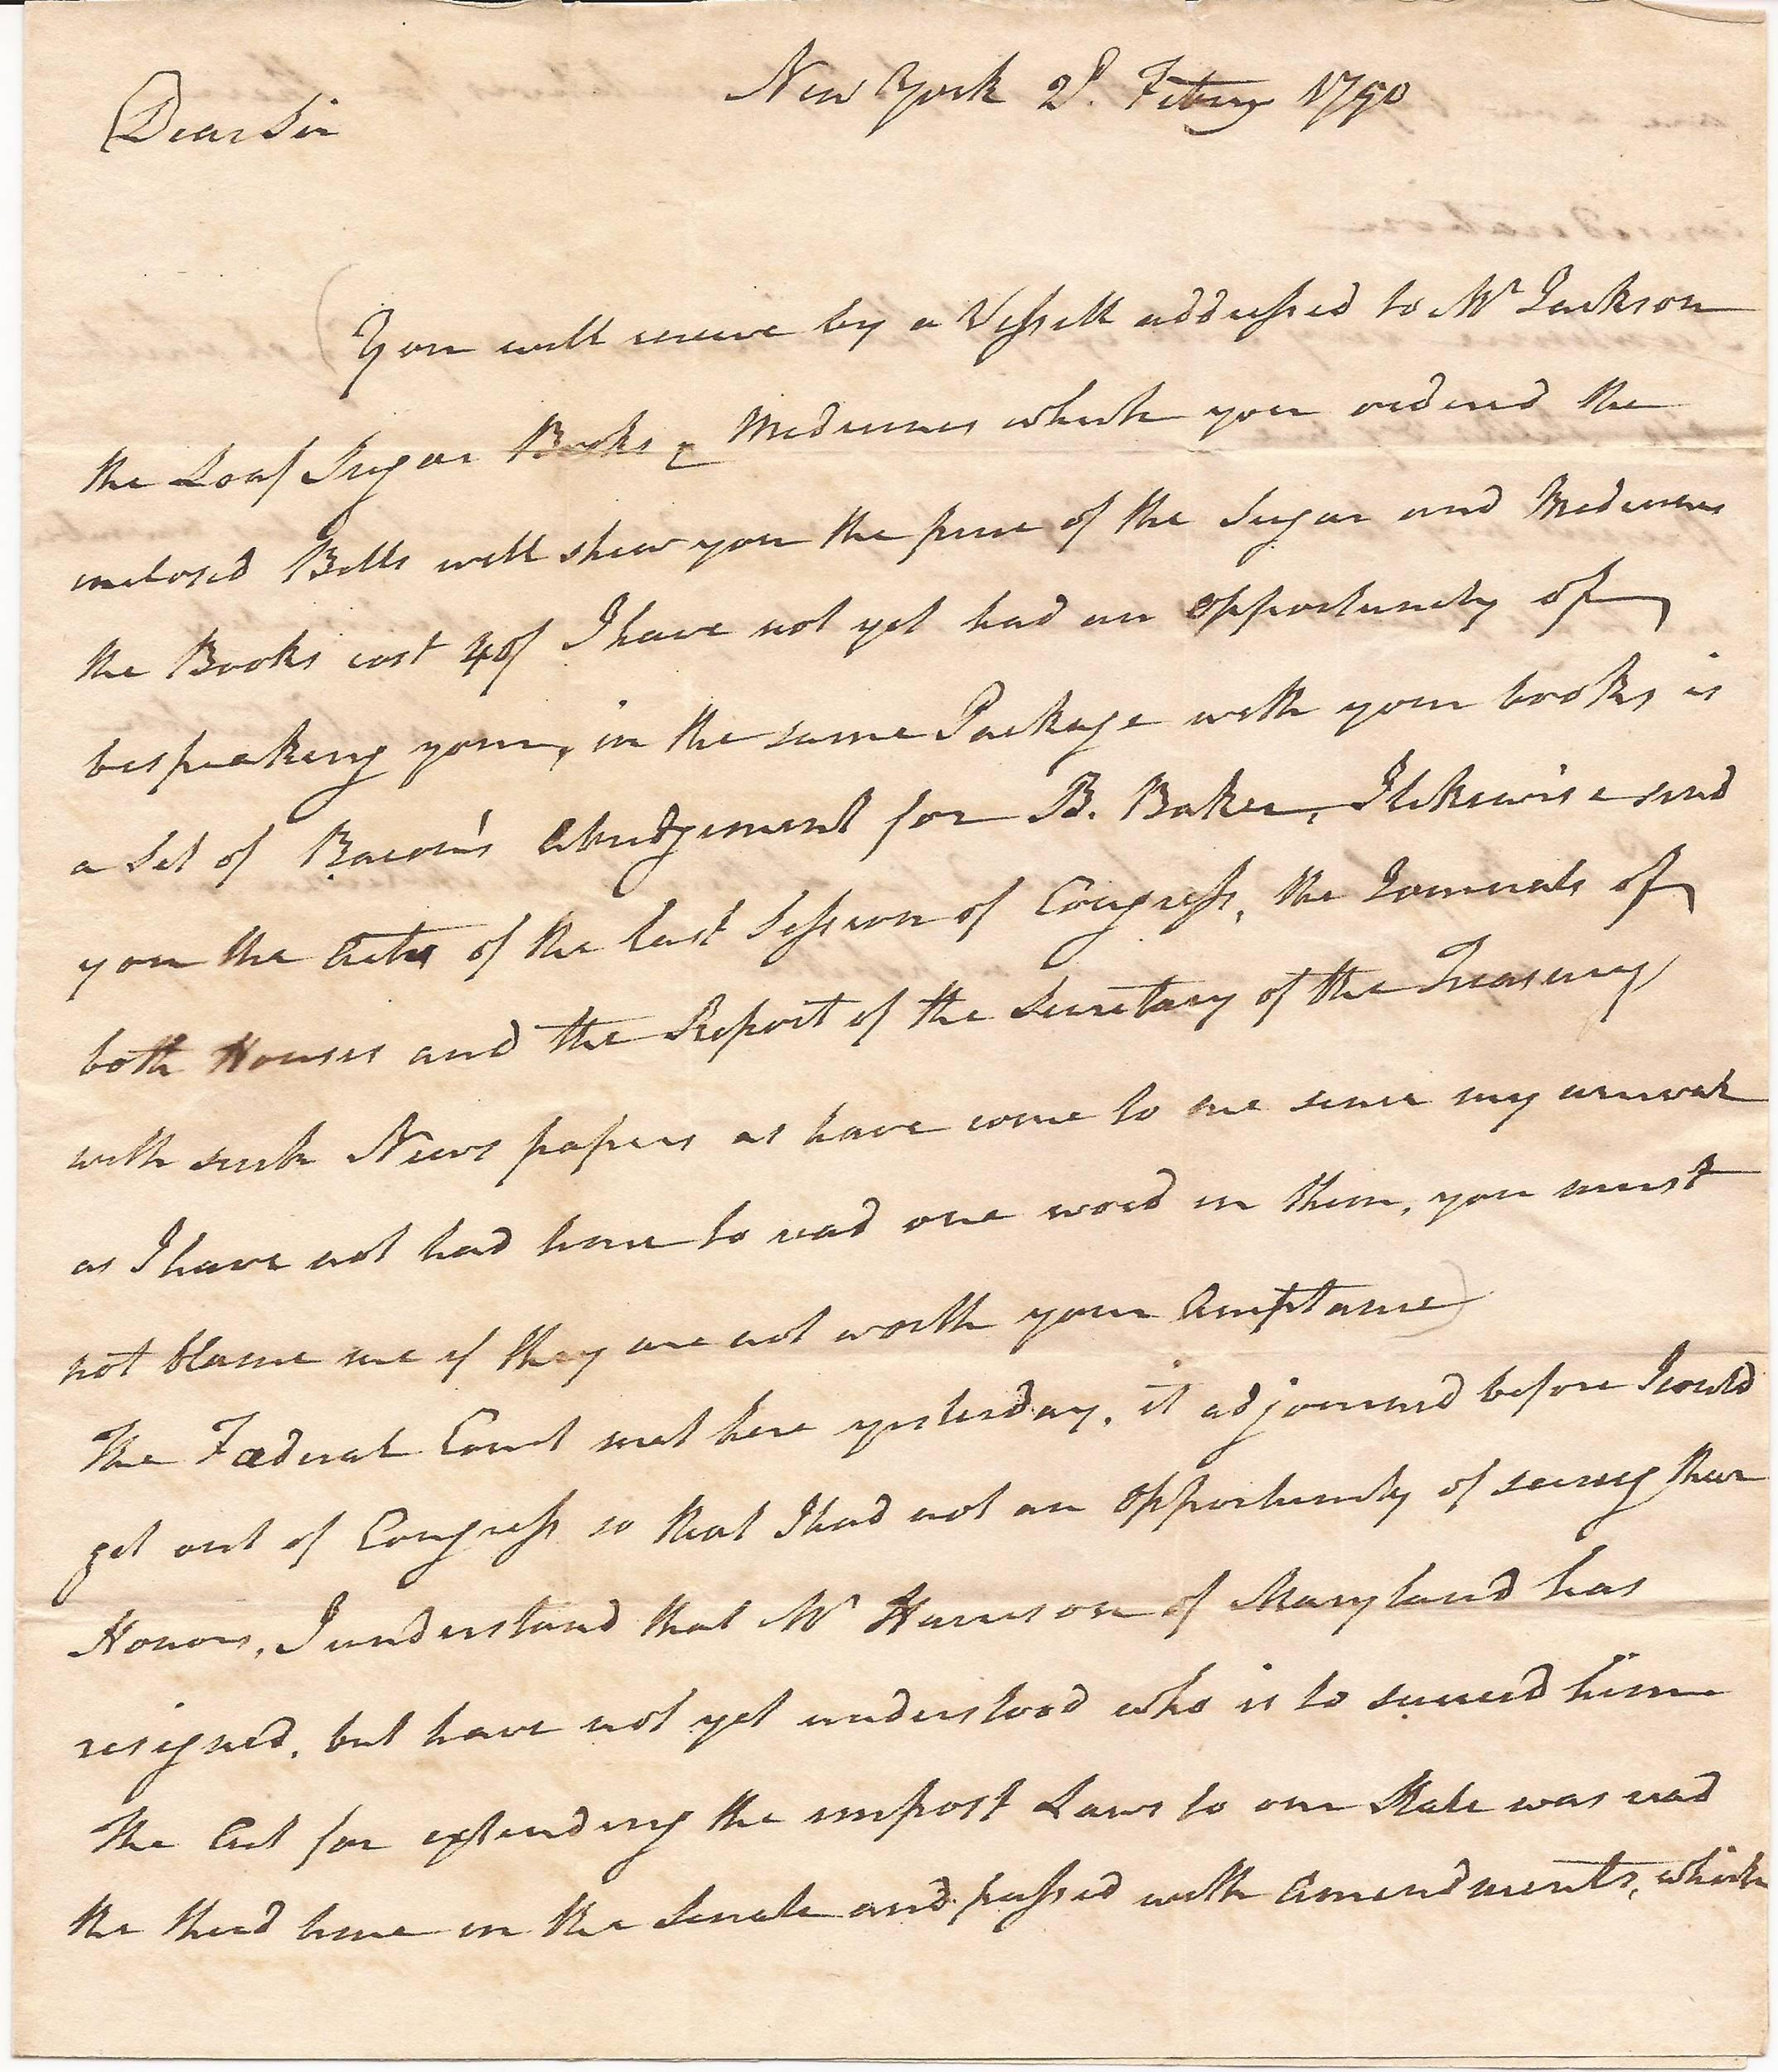 U.S. Senator Johnston of North Carolina Writes to His Protégé James Iredell Just Days Before Washington Nominates Iredell as One of the First Justices of the Supreme Court